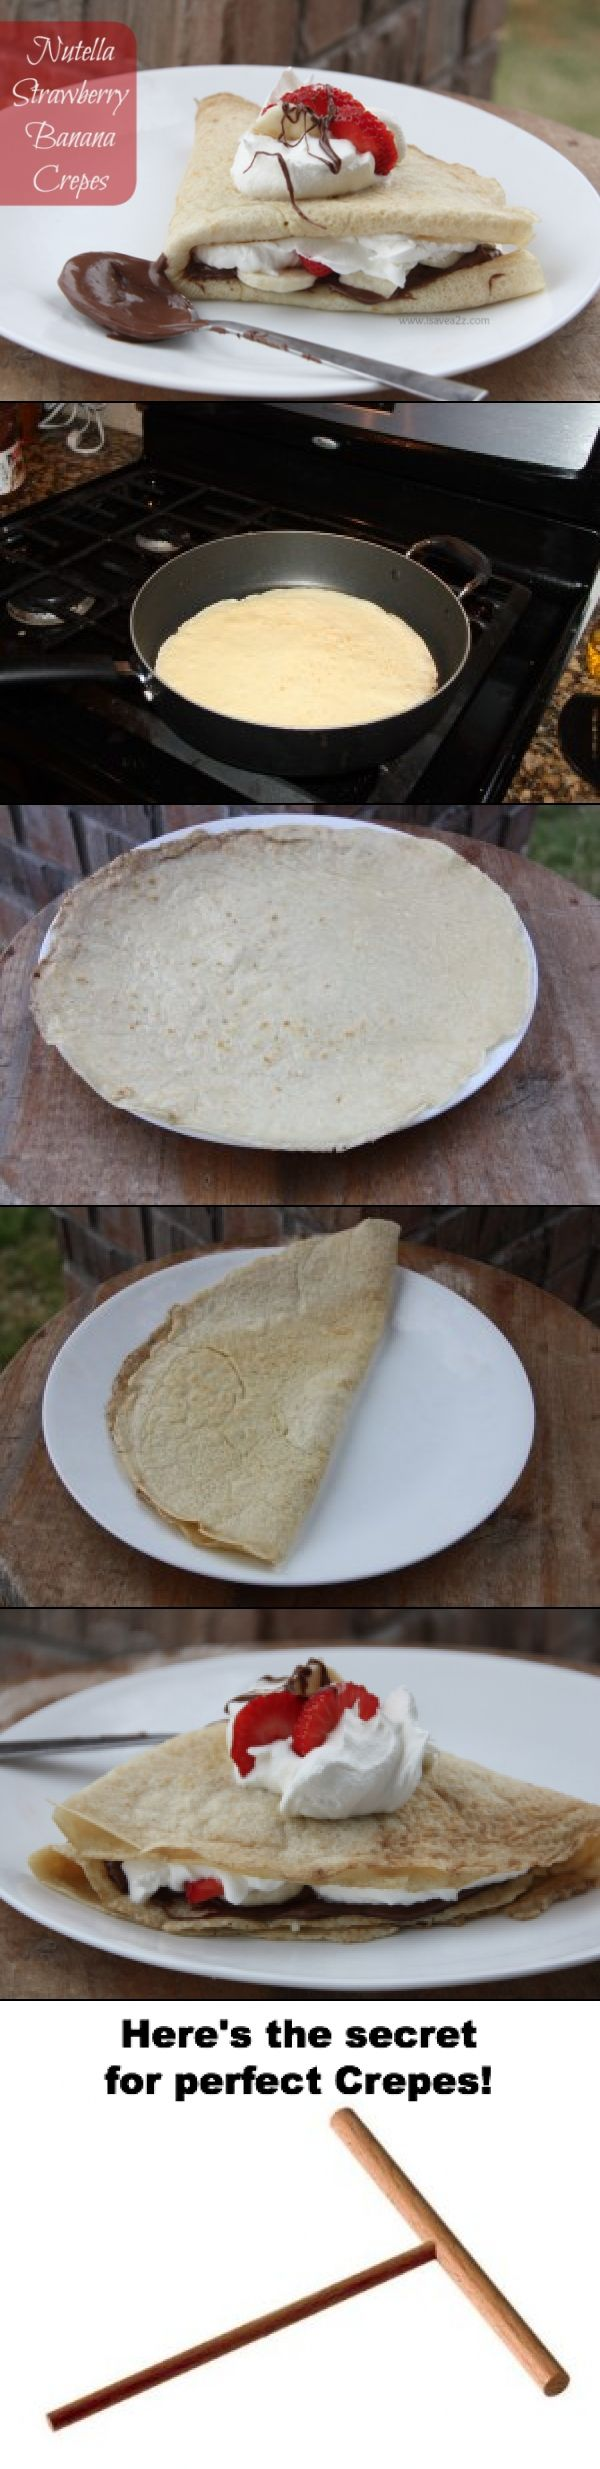 Here's the secret to crepes!  EASY PEASY!!!  #Crepes #Yummy #Recipe http://www.isavea2z.com/how-to-make-crepes/